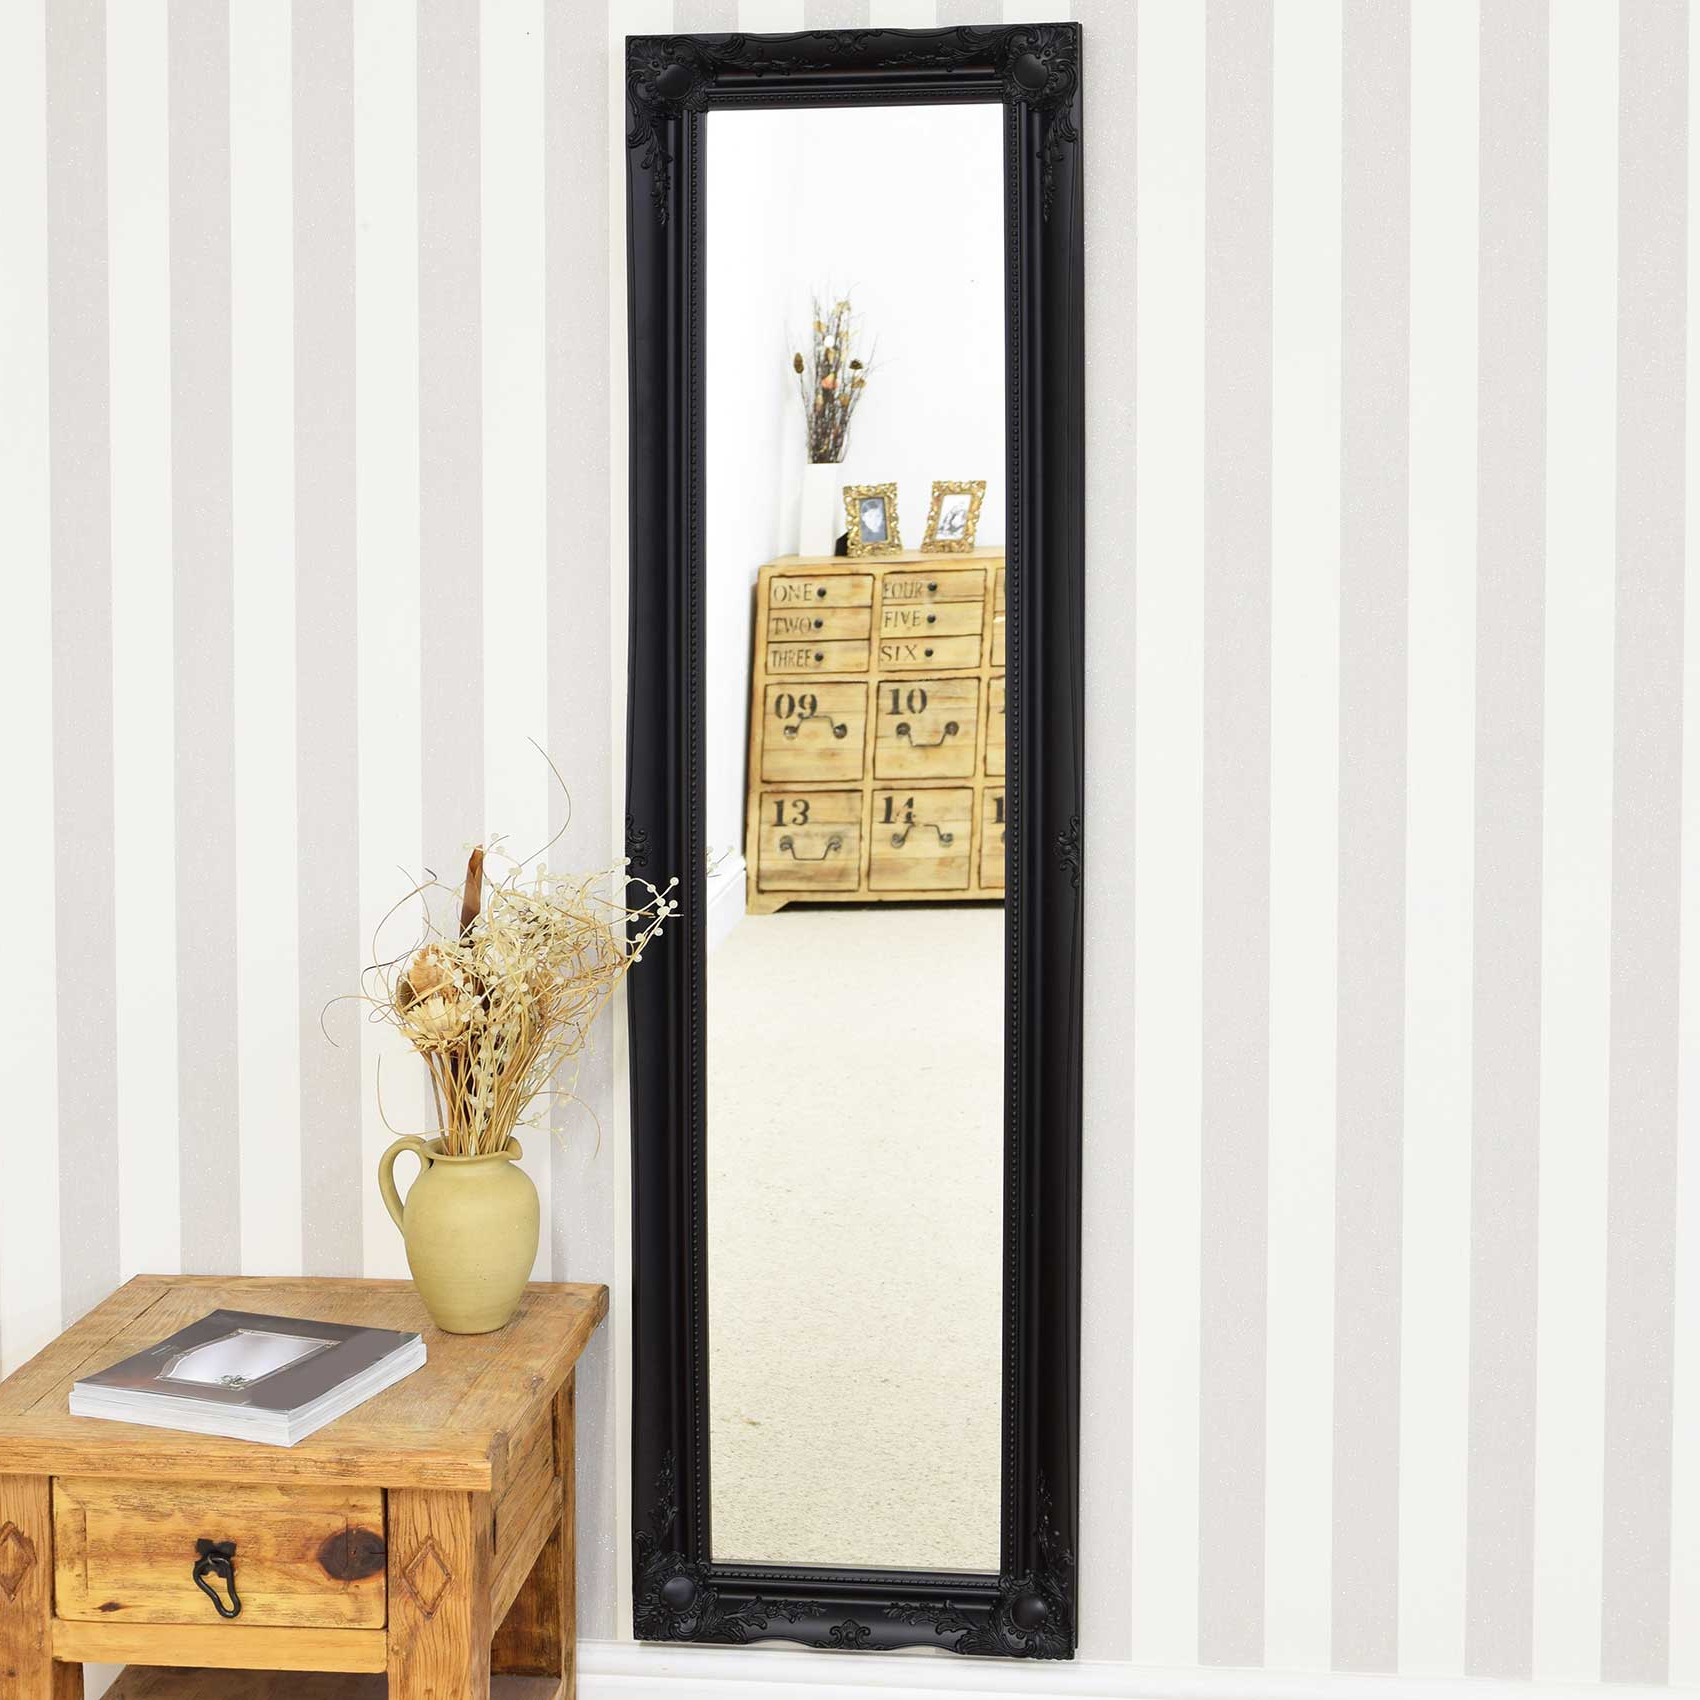 Decorative Full Length Wall Mirrors In 2019 Details About Large Wall Mirror 5ft6 X 1ft6 Black Full Length Classic Ornate Decorative (View 13 of 20)